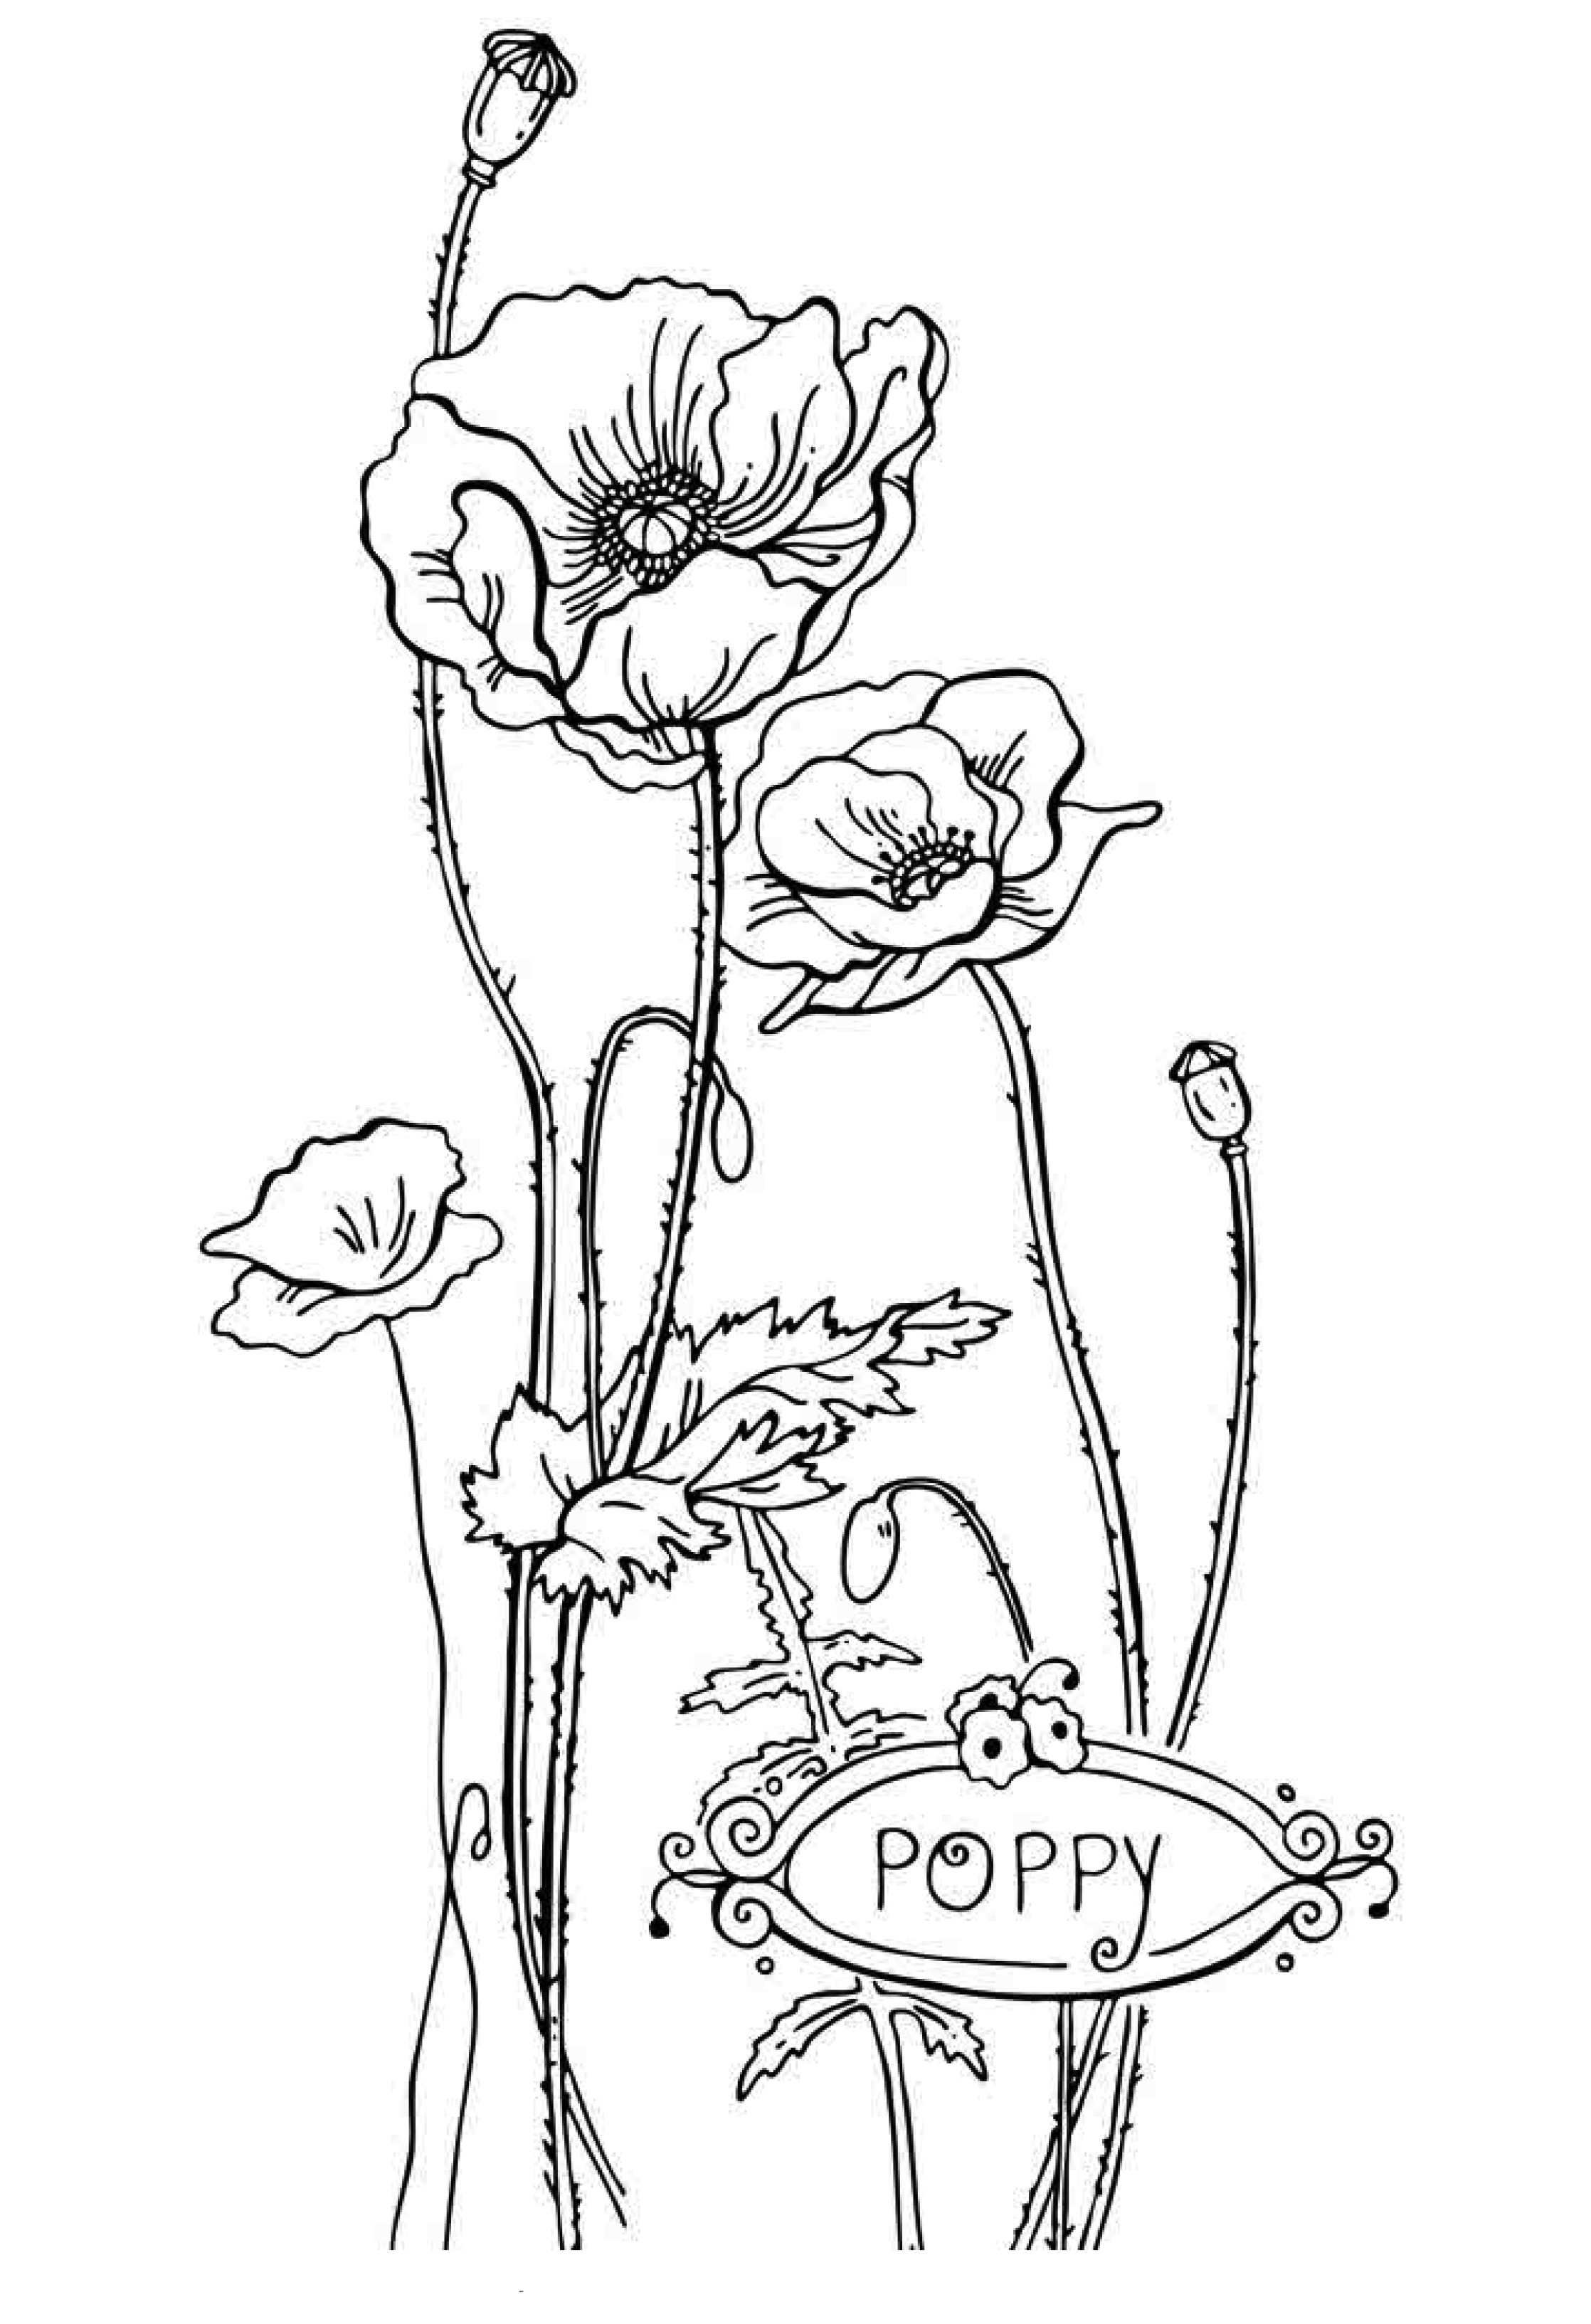 poppy coloring page free poppy coloring page jeffersonclan page poppy coloring